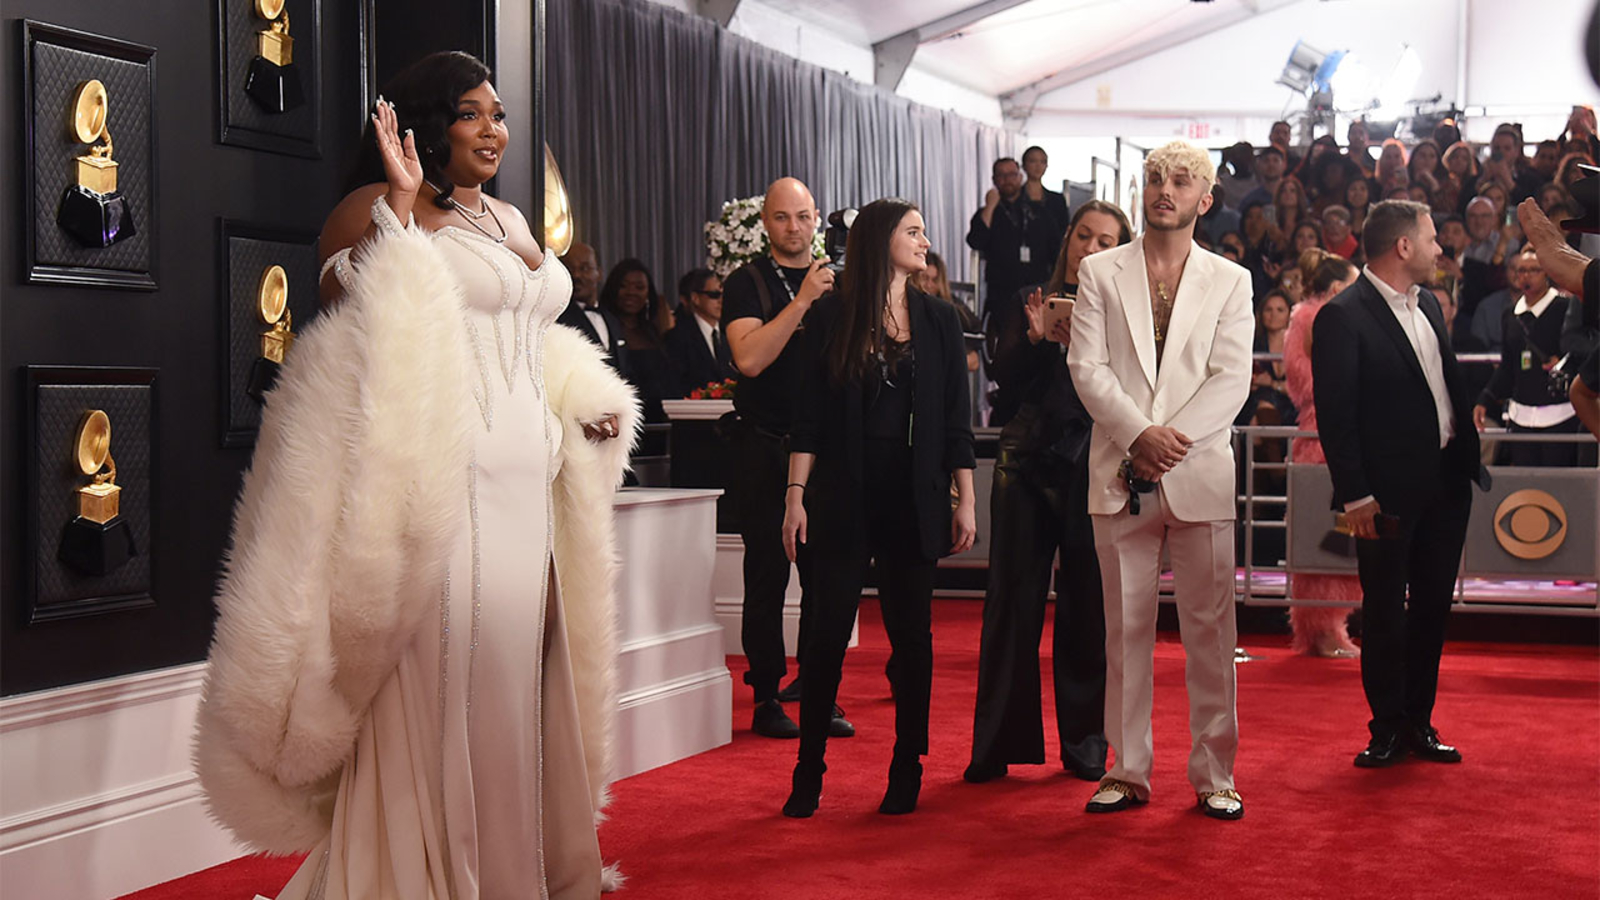 grammys red carpet 2020 see what the stars are wearing on music s biggest night abc11 raleigh durham grammys red carpet 2020 see what the stars are wearing on music s biggest night abc11 raleigh durham